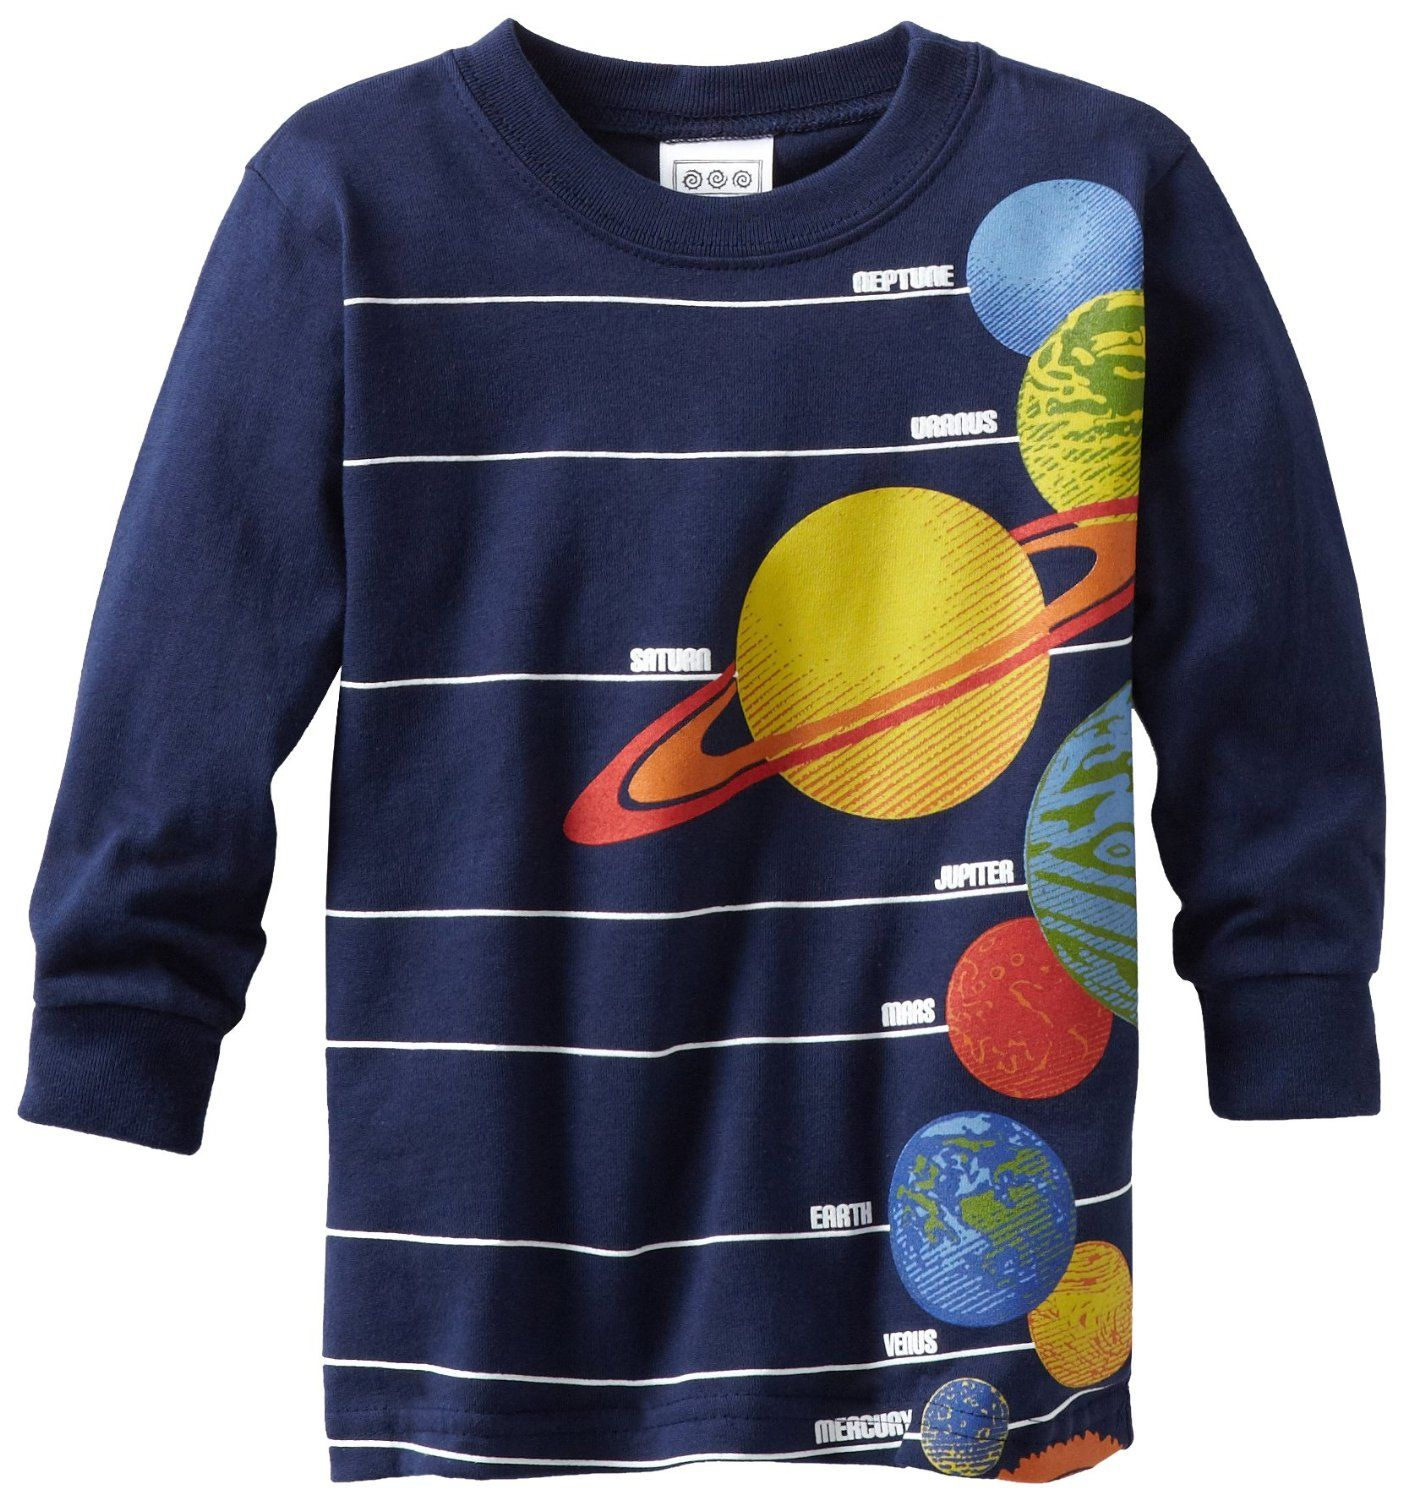 Tumbleweed Boys Solar System Shirt: With all the planets front and center, this soft cotton solar system tee ($26) is just right for teaching your child all about the great big universe.